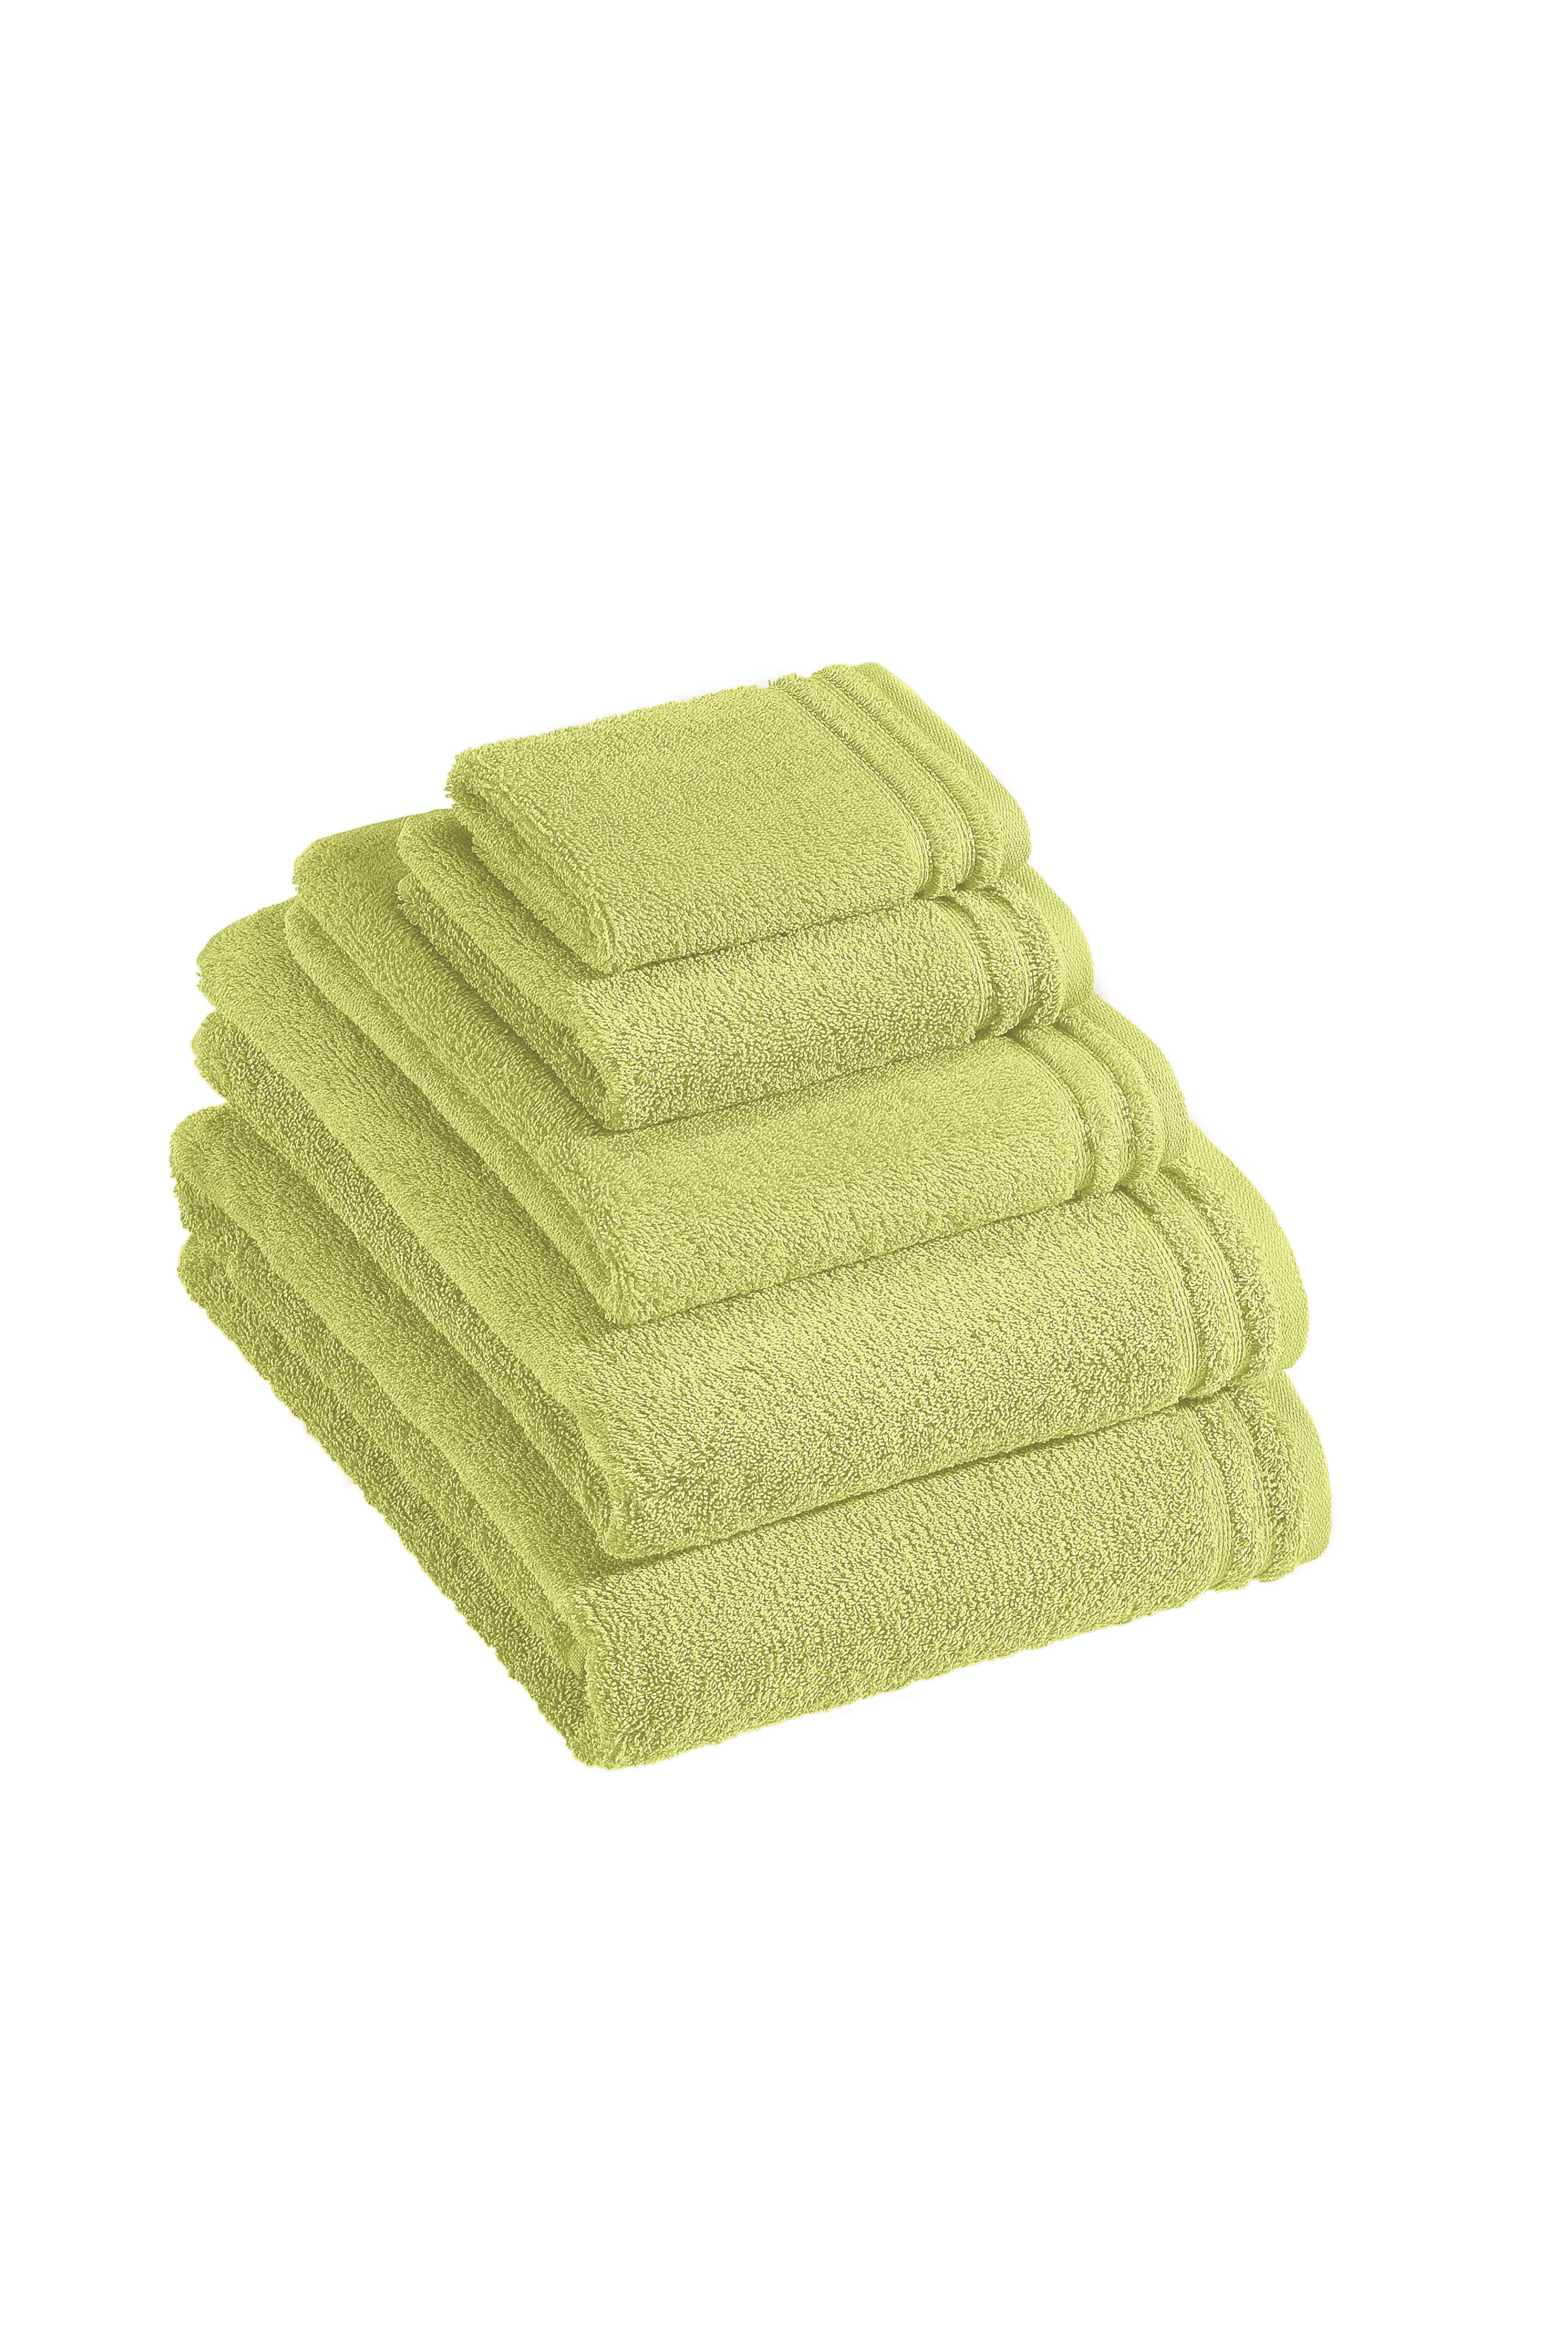 Calypso Feeling towel range in meadow